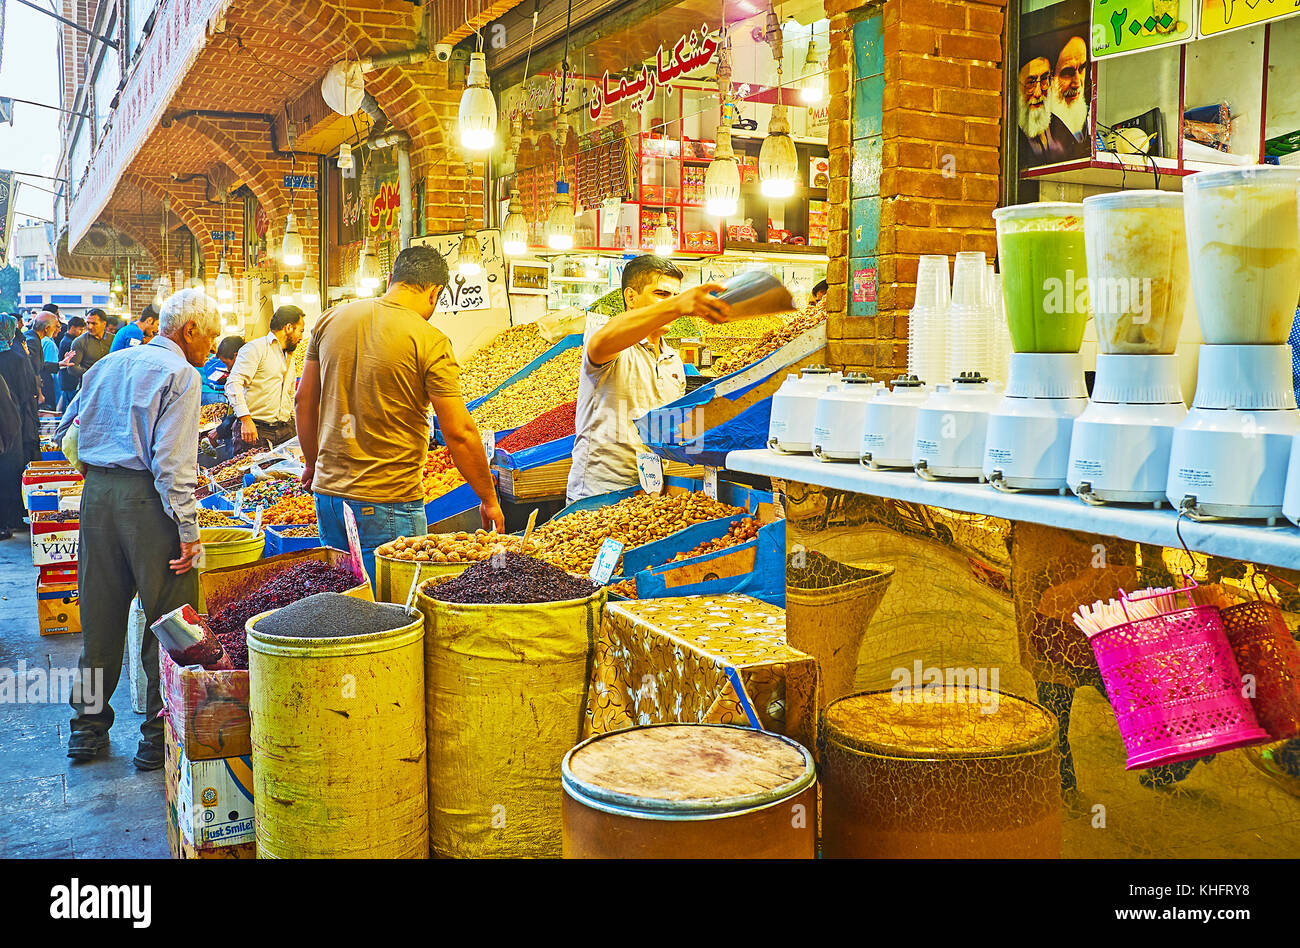 TEHRAN, IRAN - OCTOBER 11, 2017: The  stall of confectionaries, dry fruits and nuts is neighboring with the fruit - Stock Image